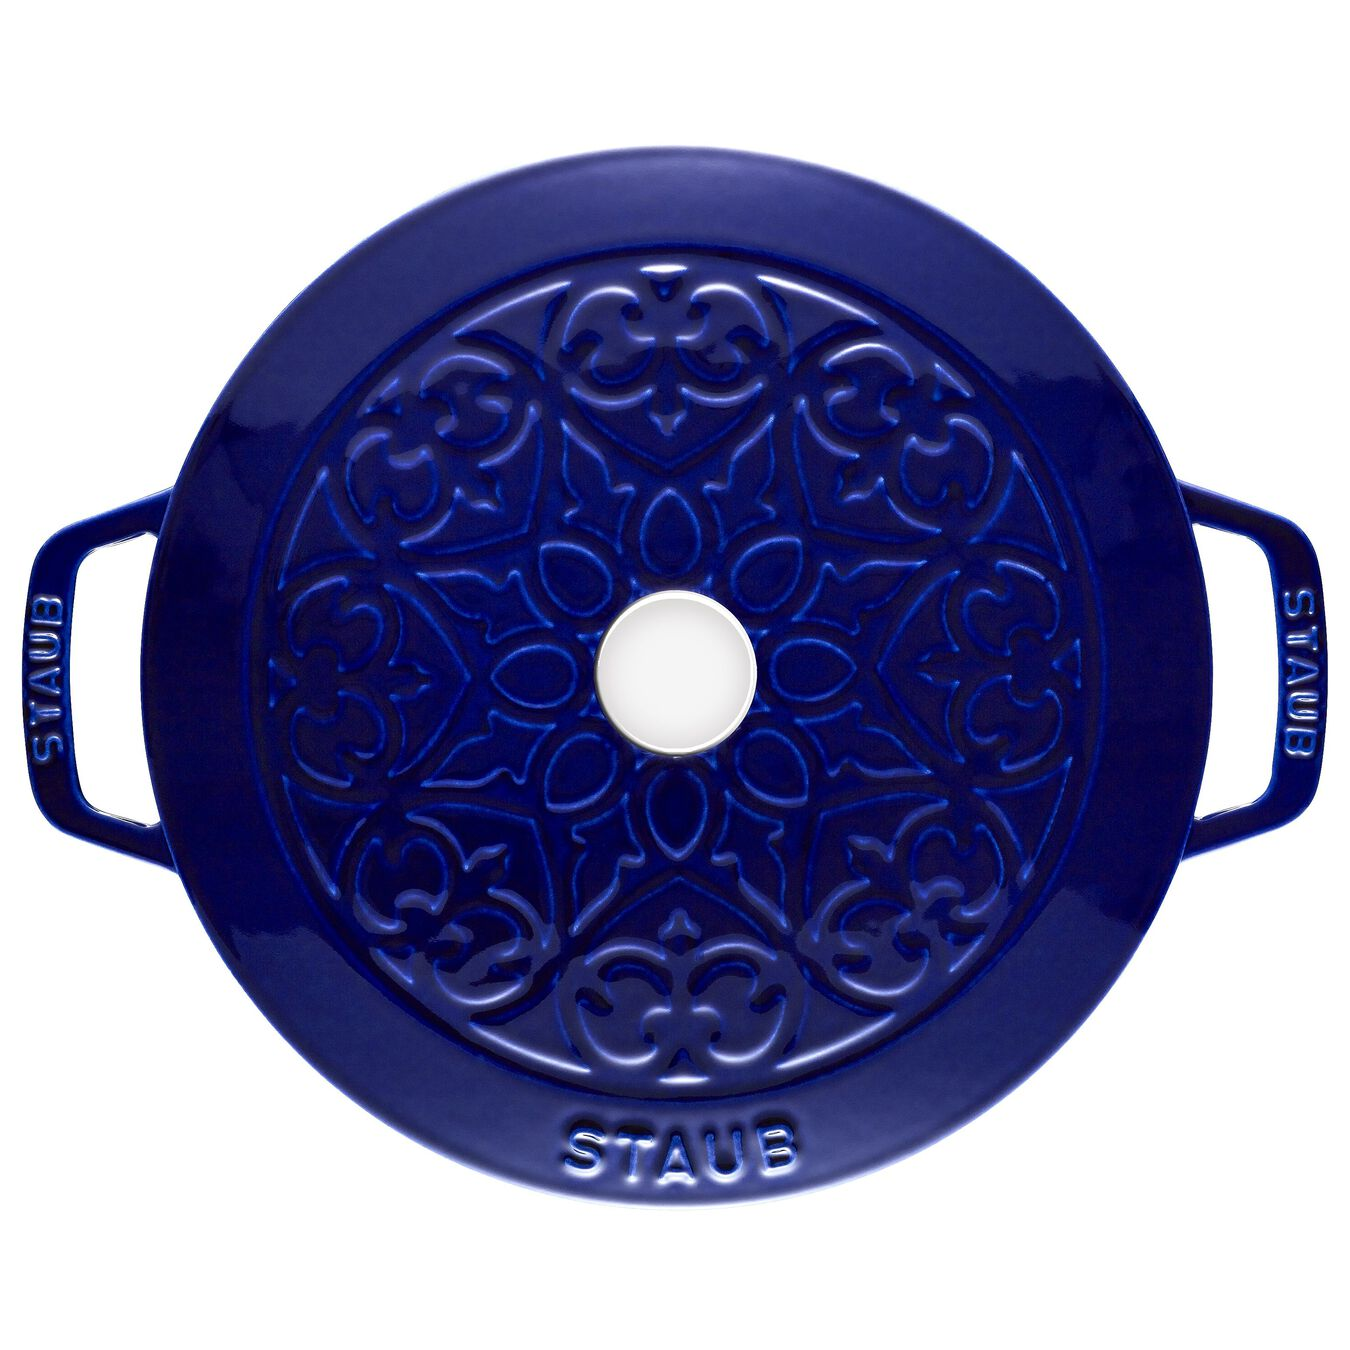 3.75 qt, Essential French Oven Lilly Lid, dark blue,,large 3